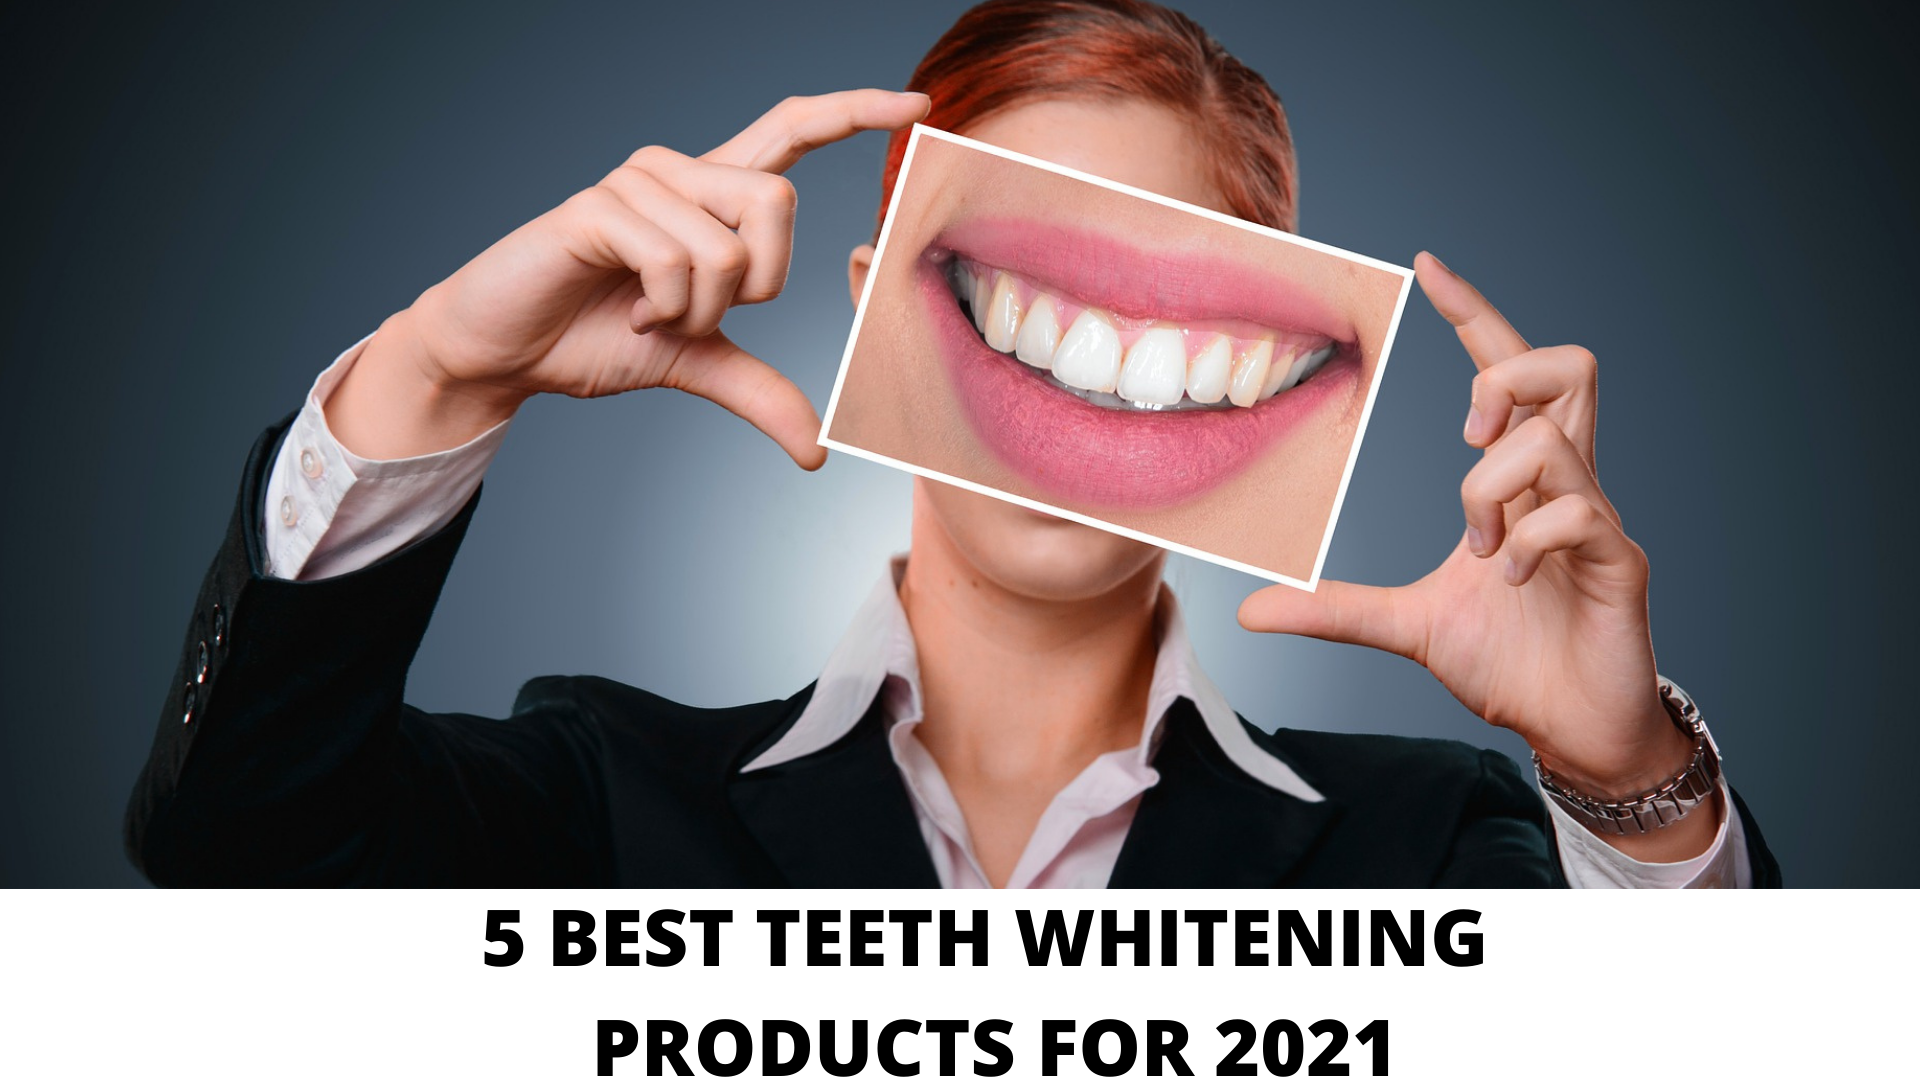 5 Best Teeth Whitening products in 2021